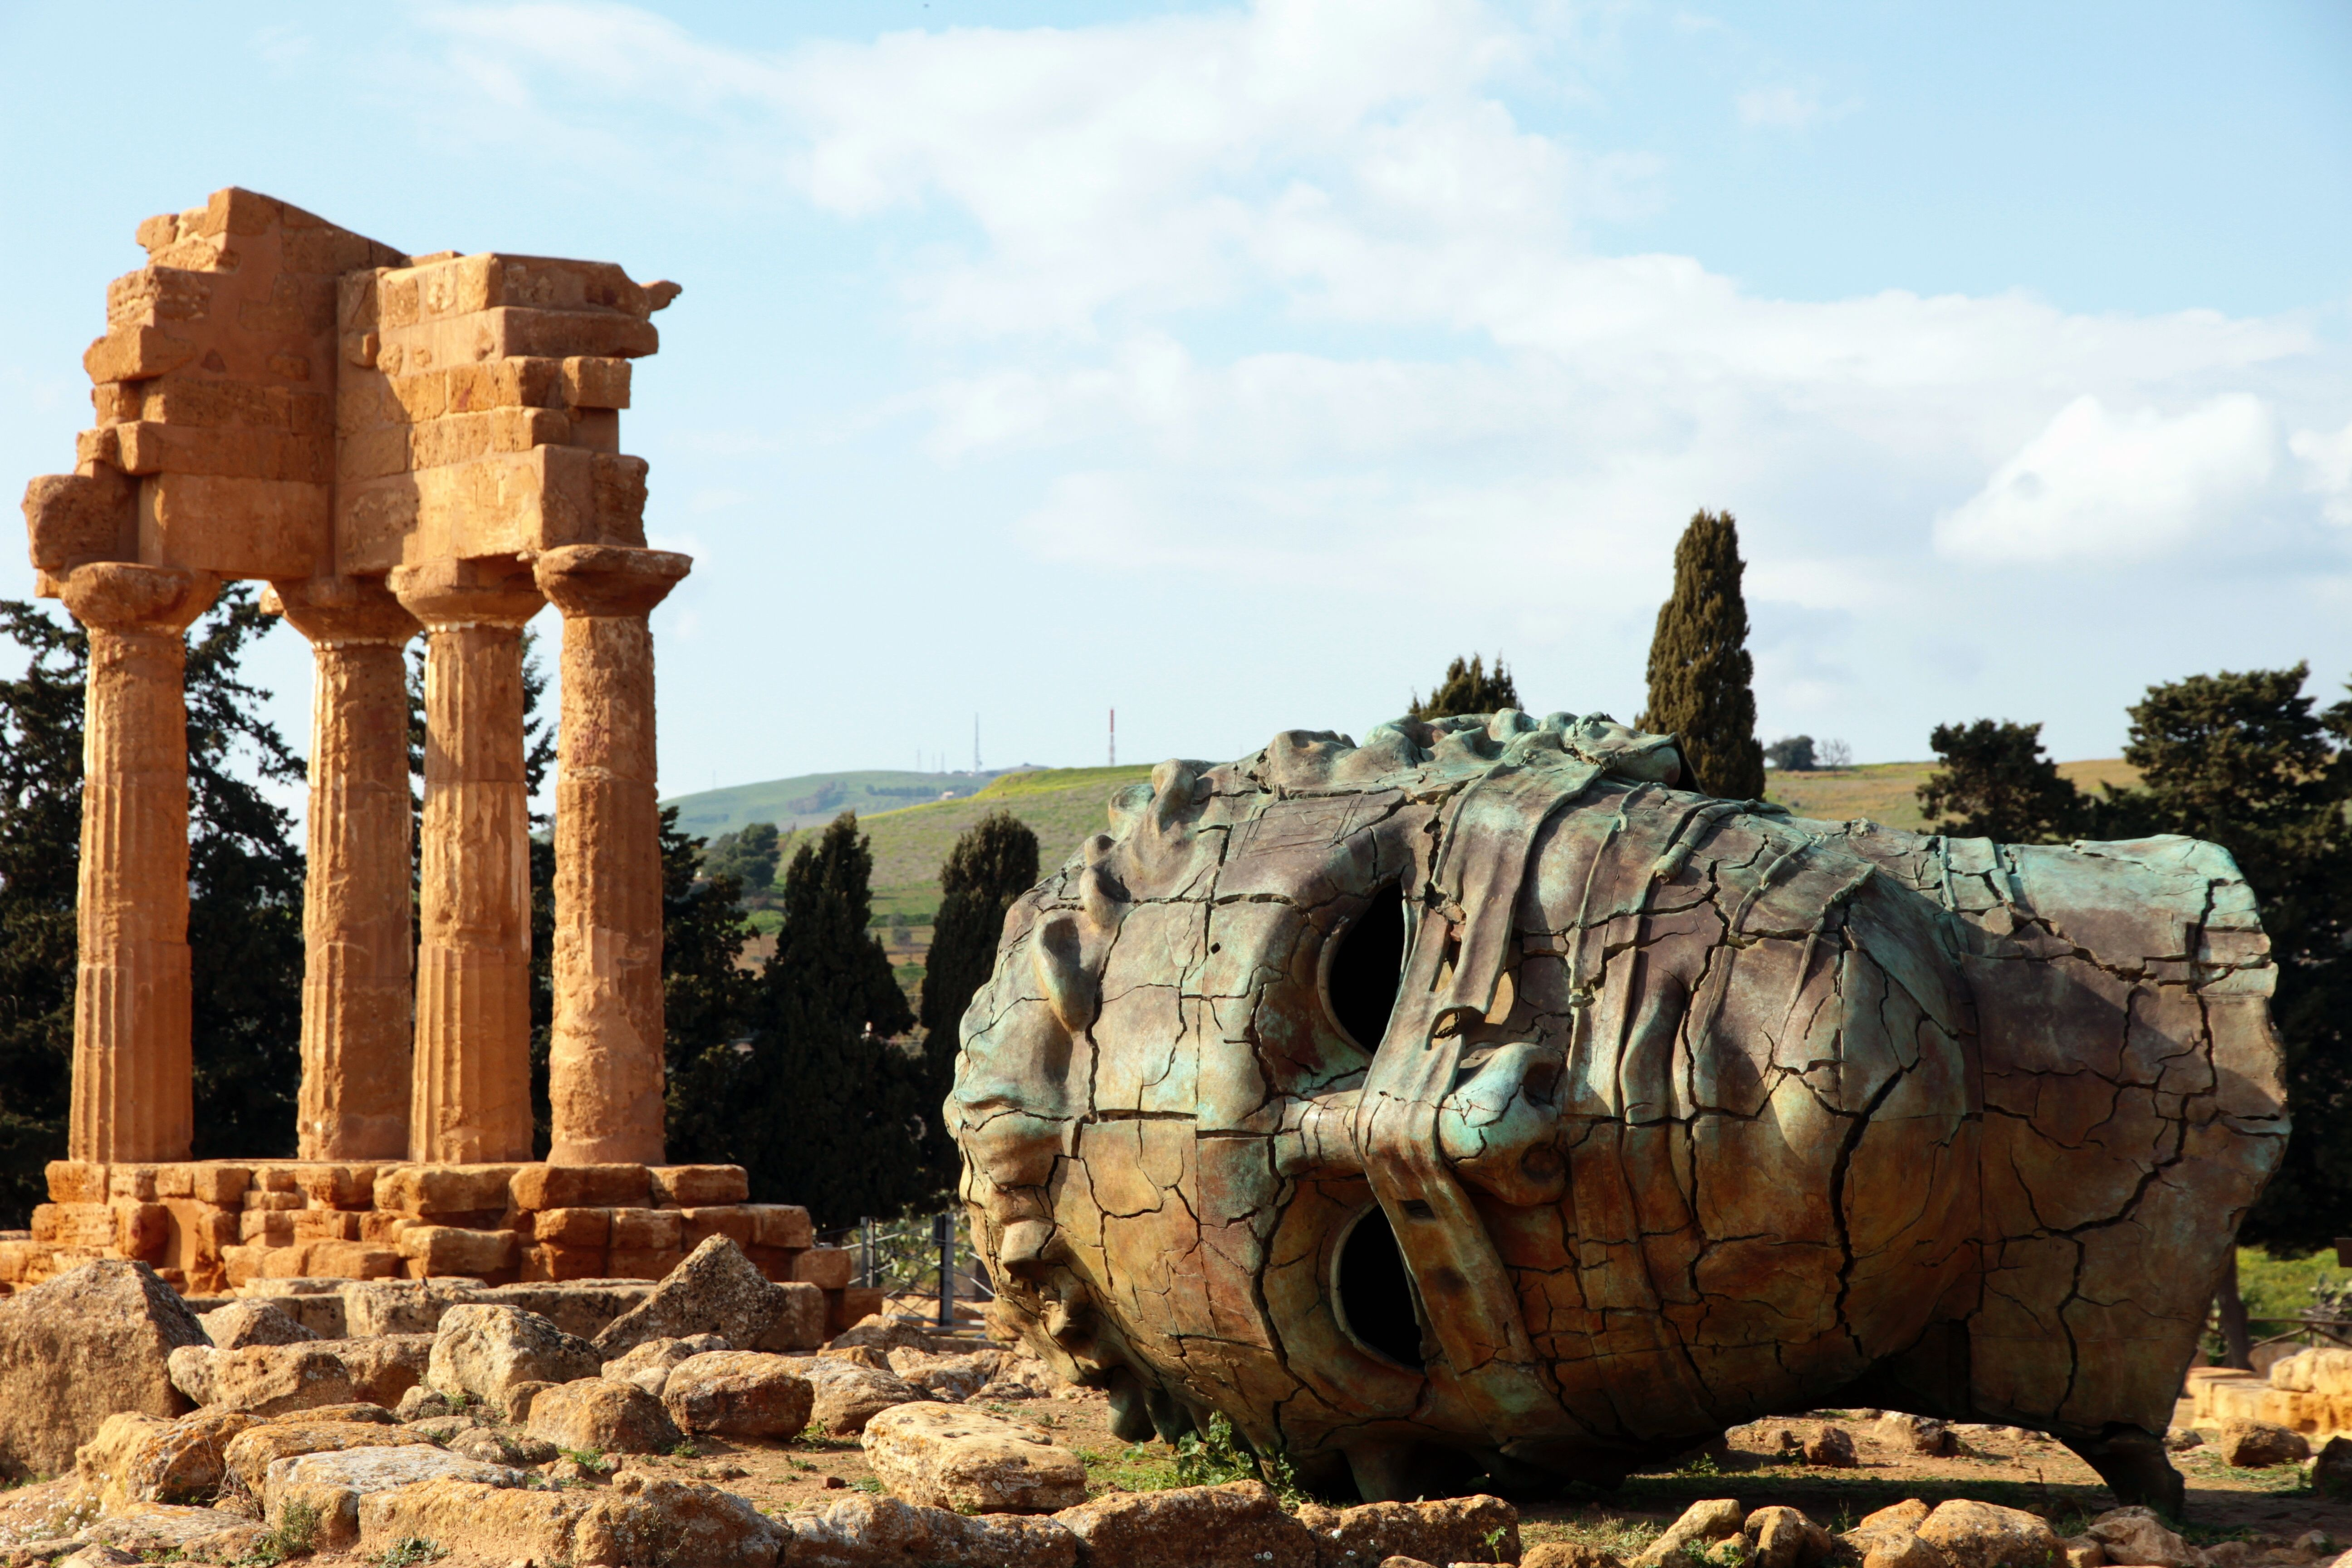 Bronze head of  a colossus statue in front of the Castor and Pollux ancient greek temple ruins at the archaelogical site of the Valley of the temples located at Agrigento, Sicily. Italy.